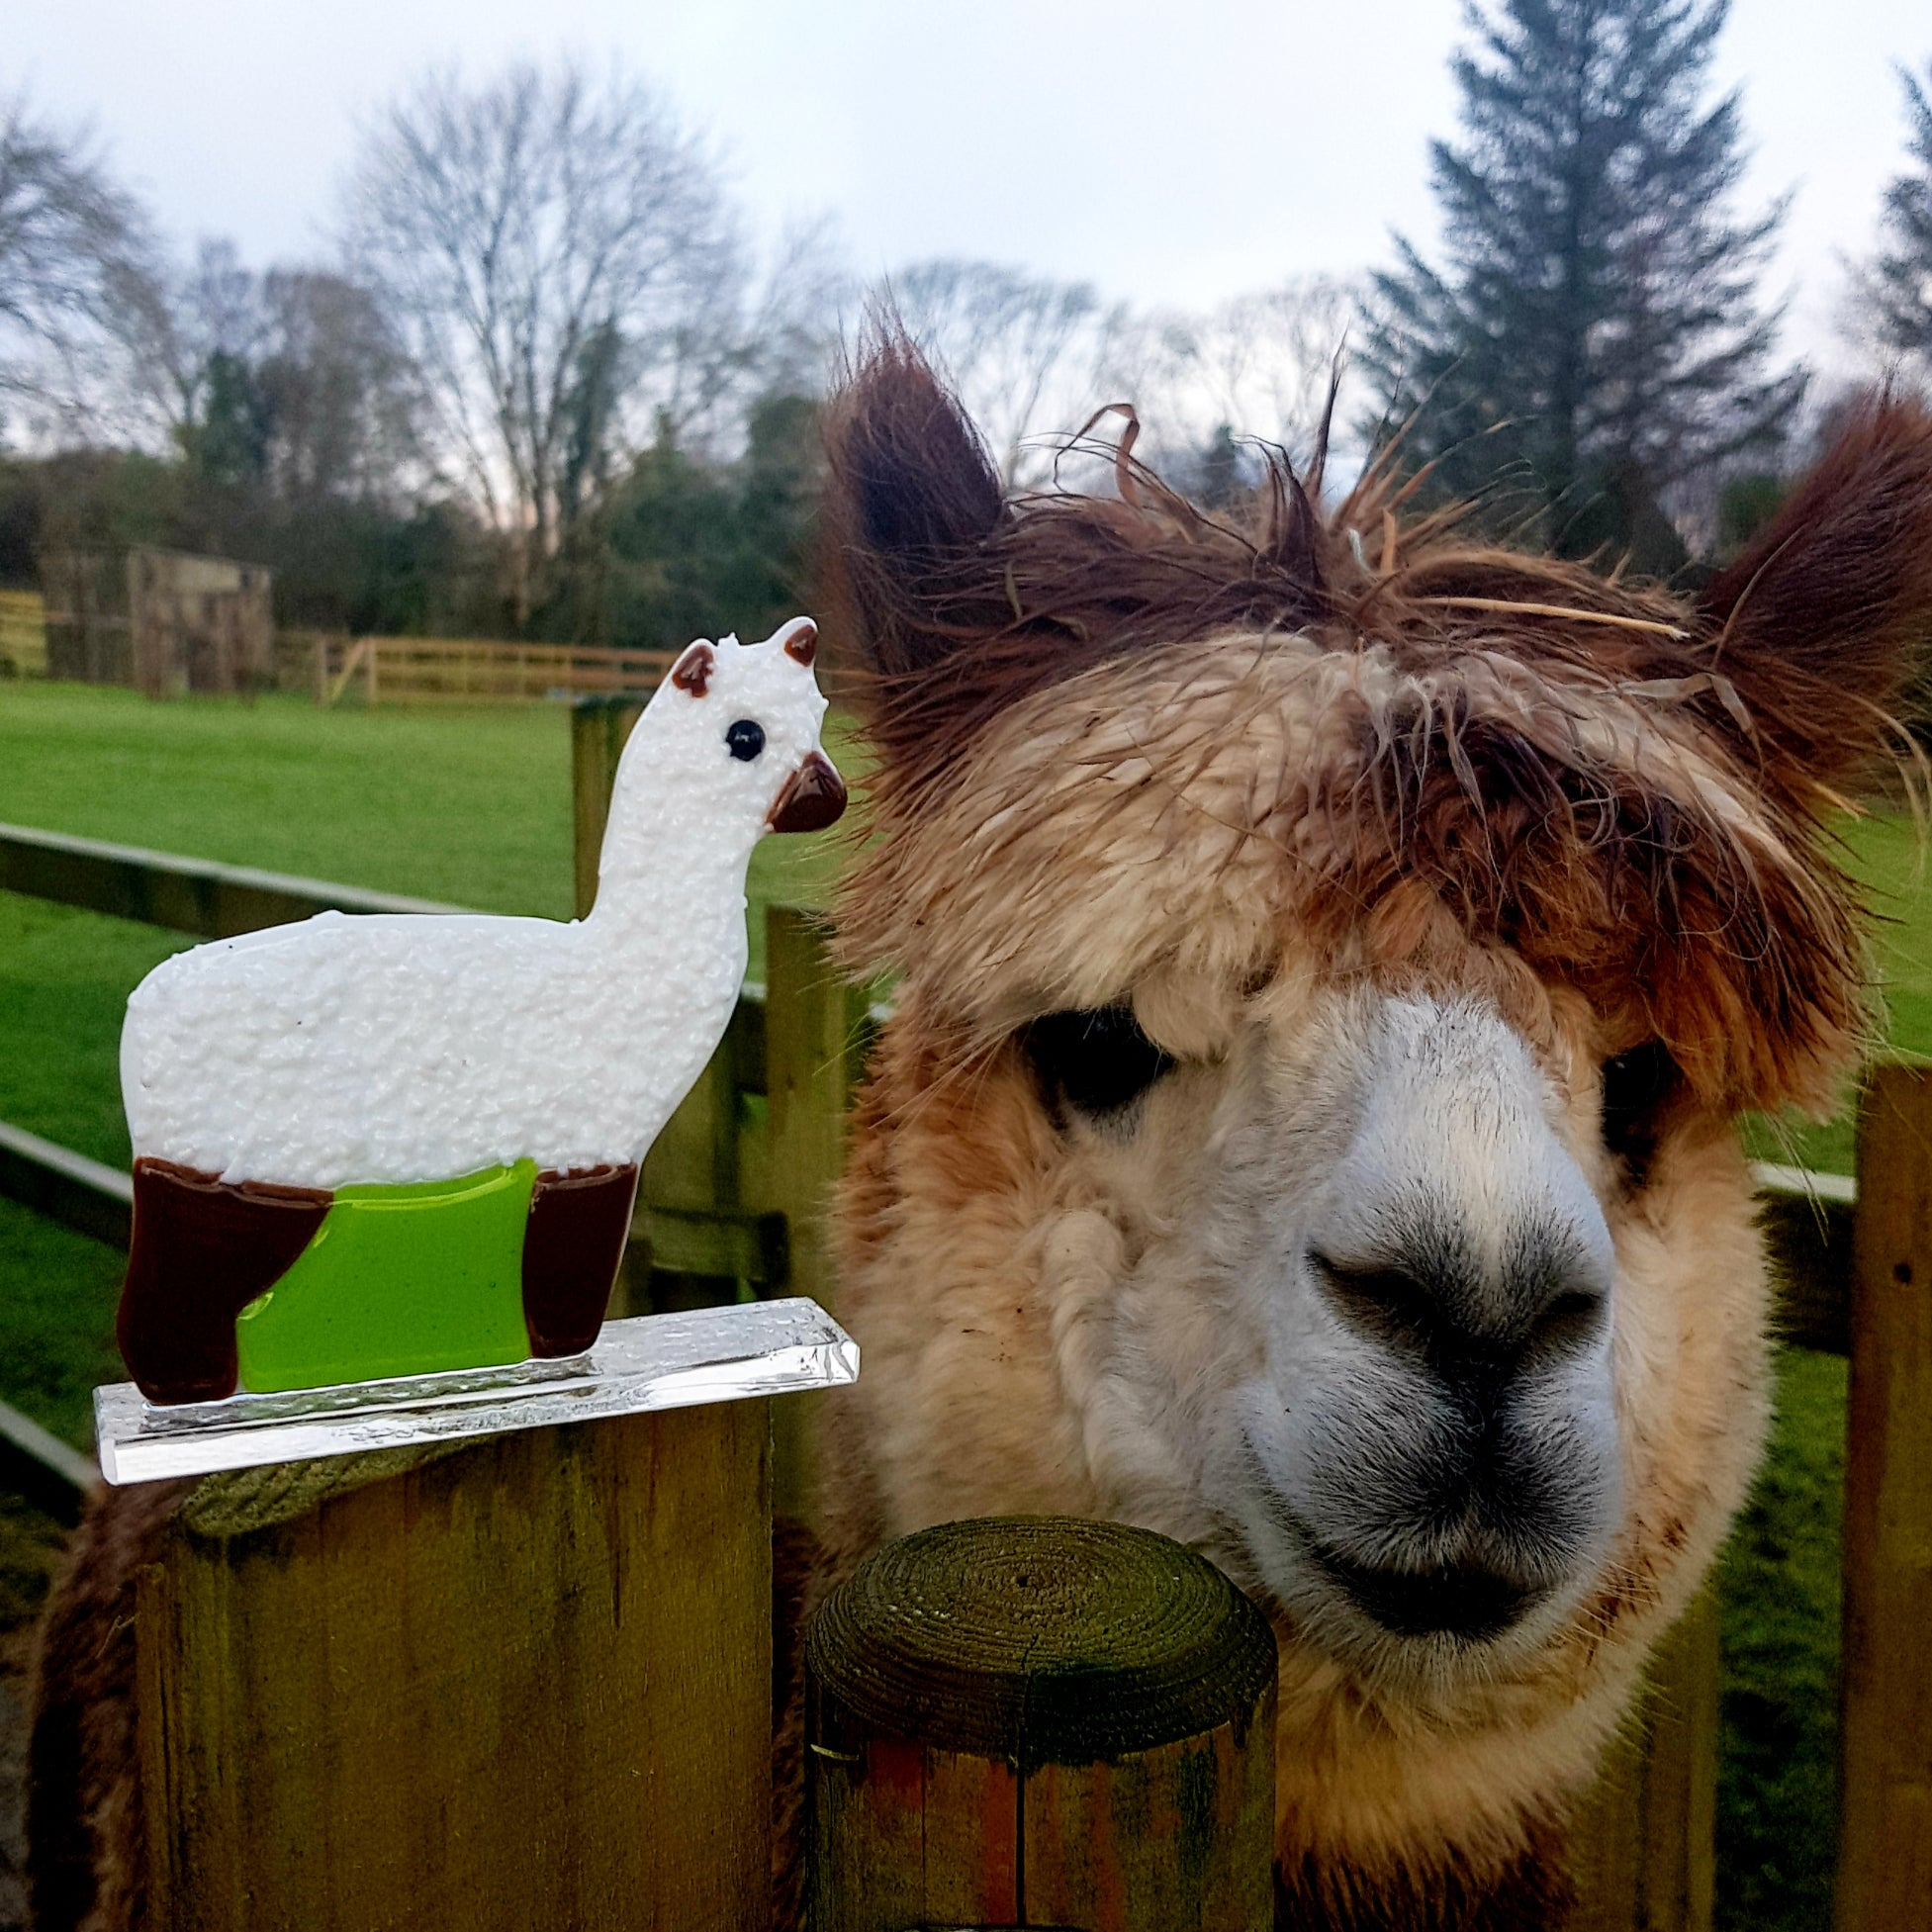 From glass artist to alpaca shepherd and back, in a day